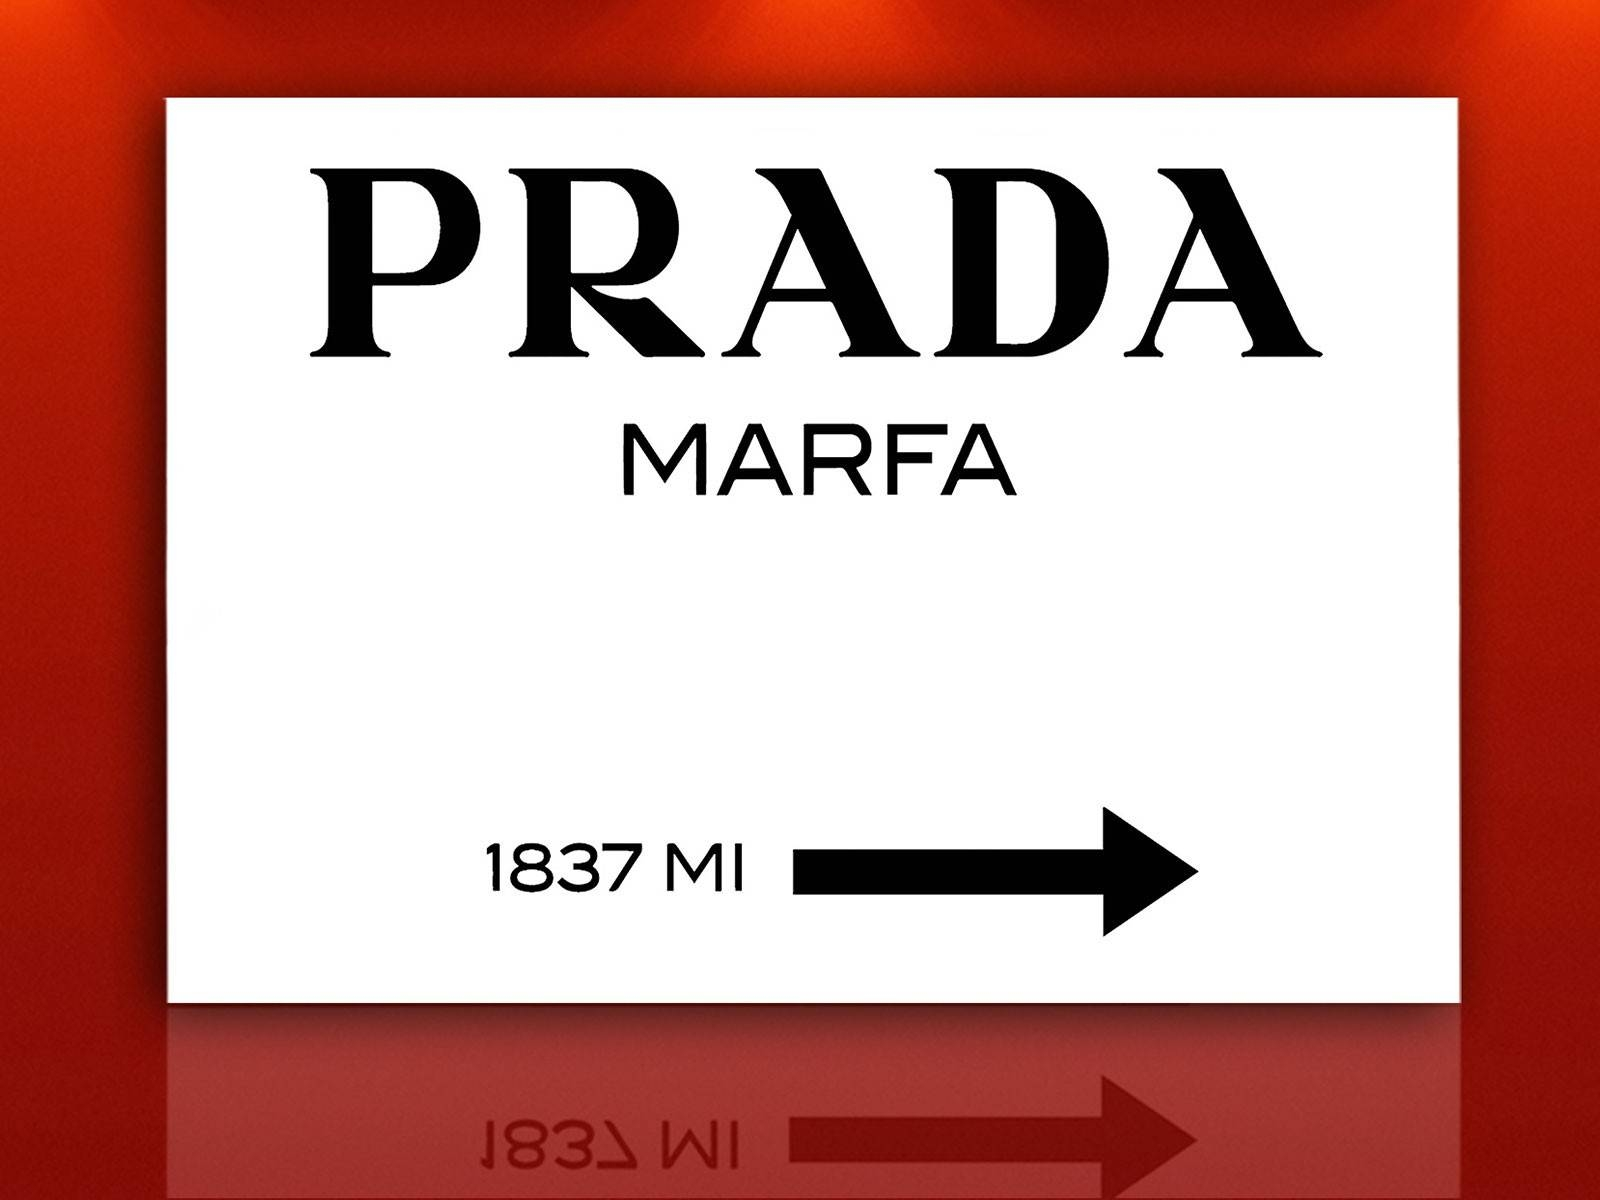 Prada Marfa Gossip Girl Sign, Painting Canvas, Wall Art, 28X20Inch Intended For Most Current Prada Wall Art (View 19 of 25)